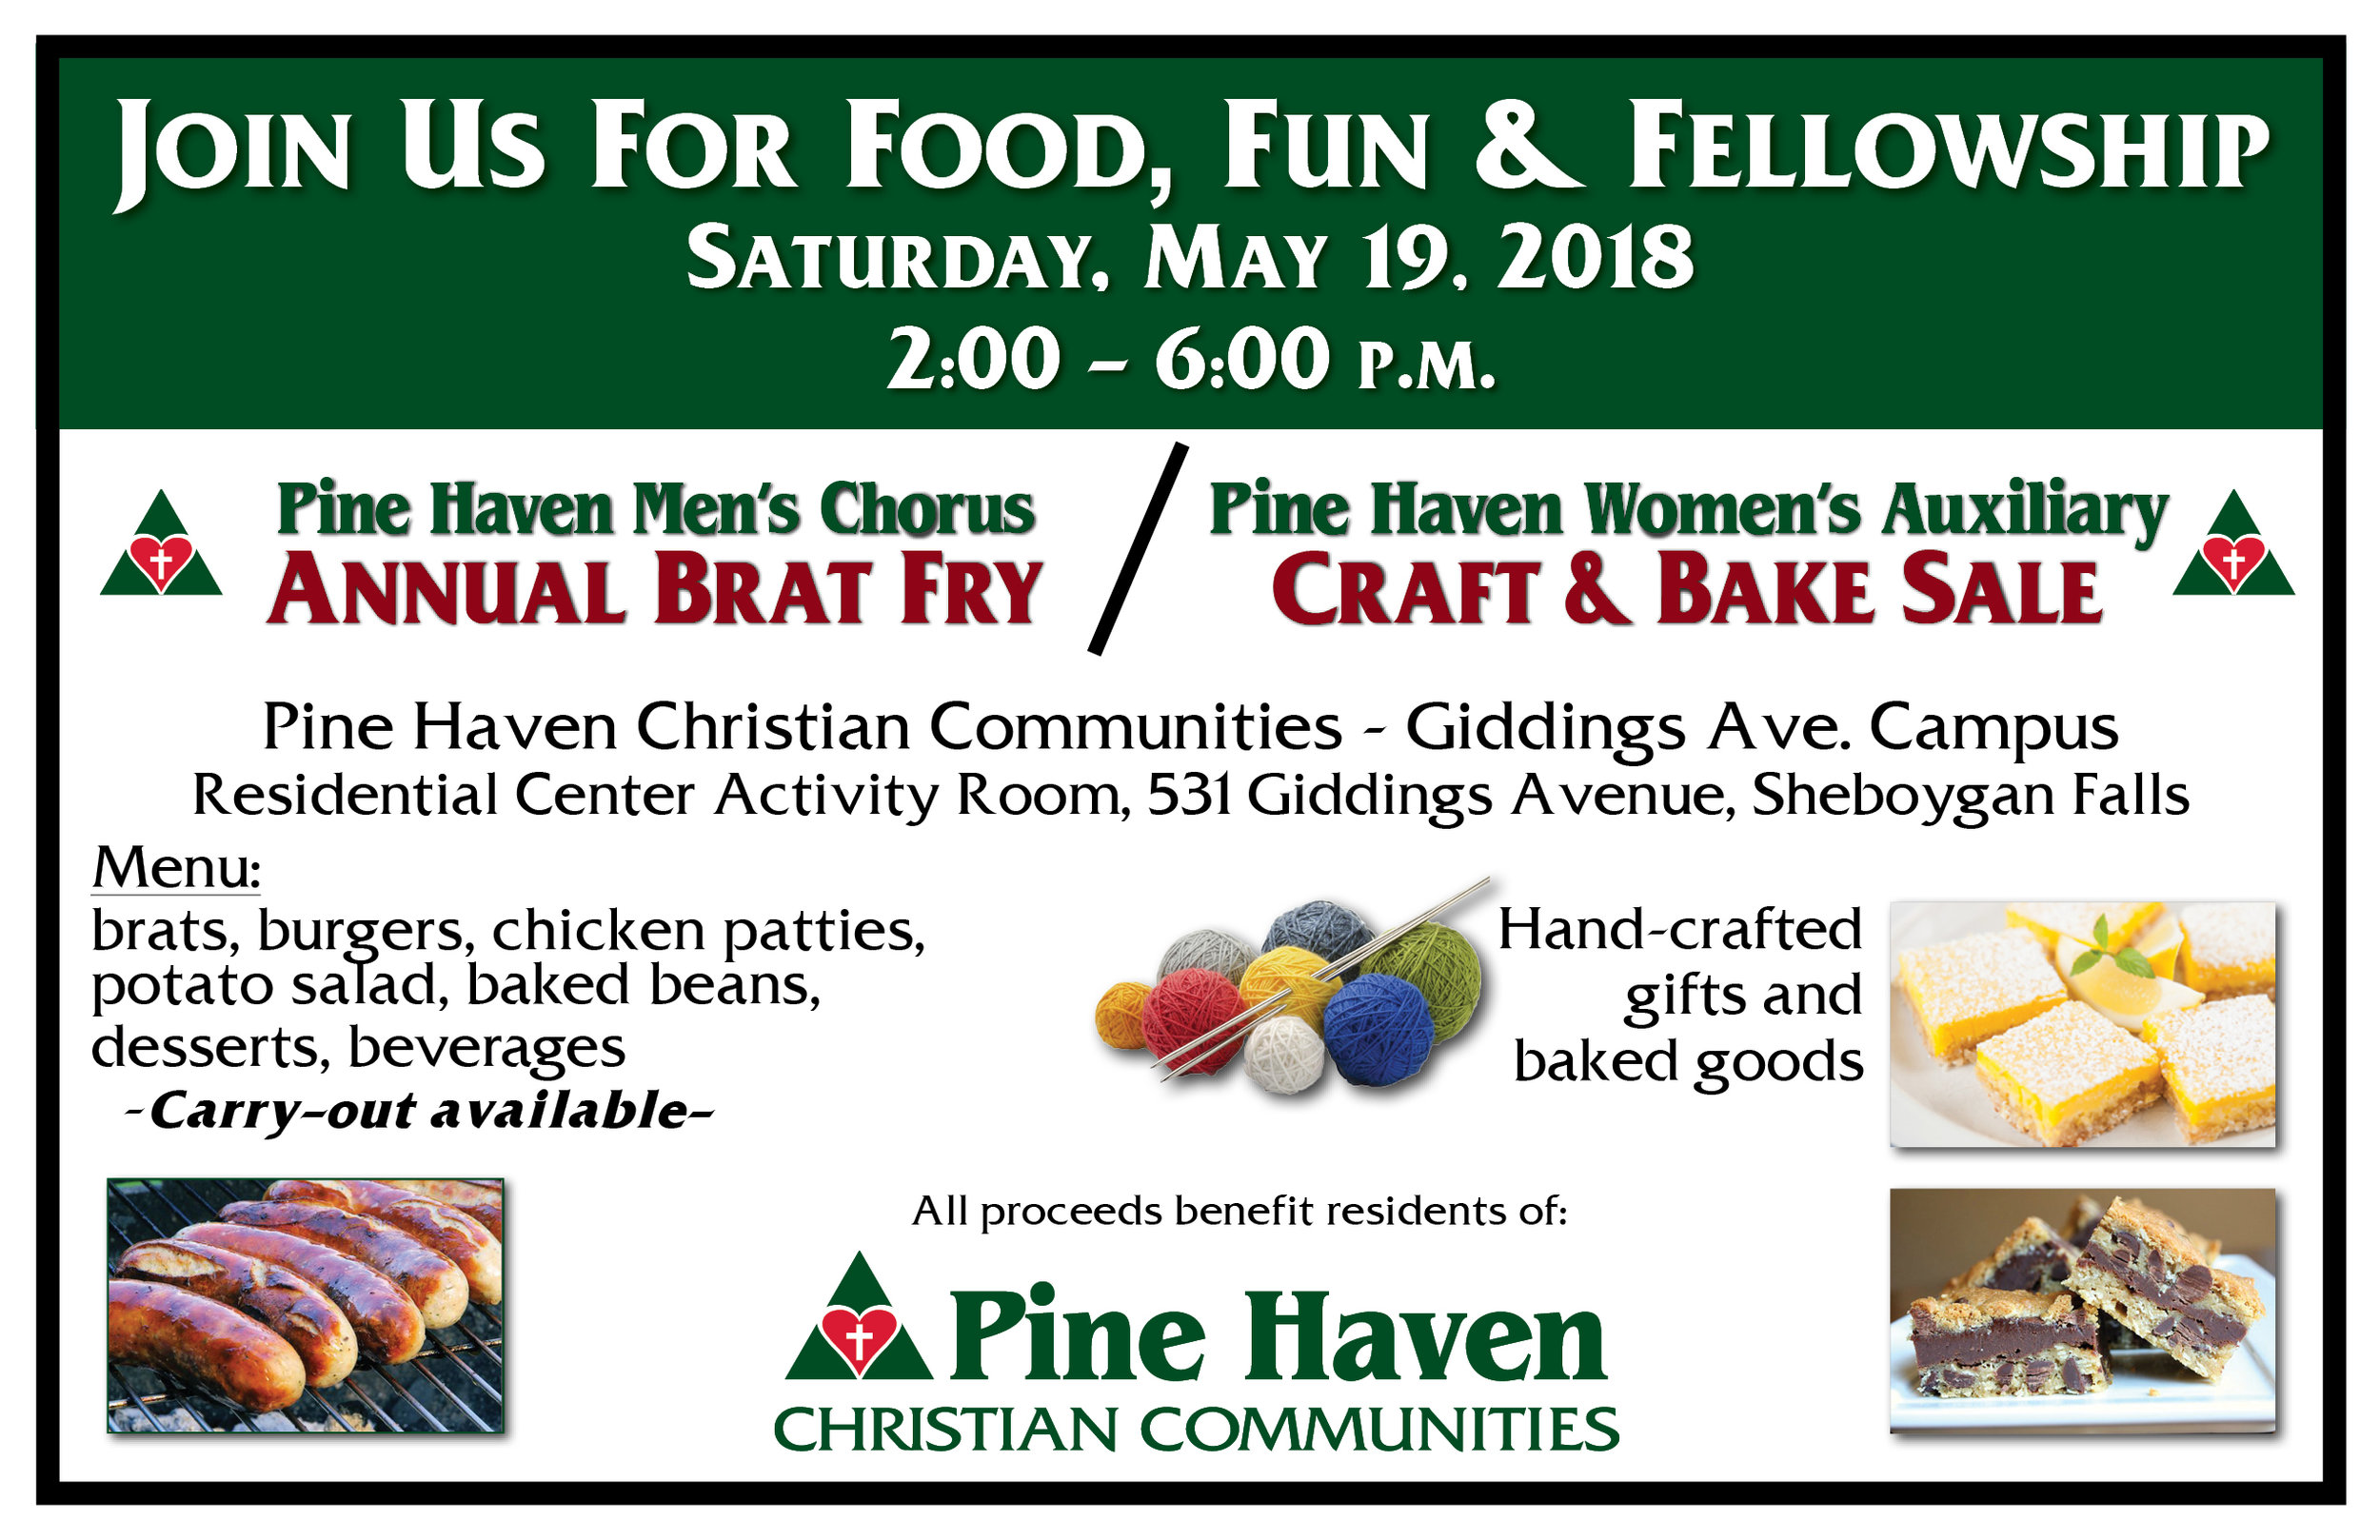 2018 Brat Fry-CraftandBake Sale Flyer - Single.jpg